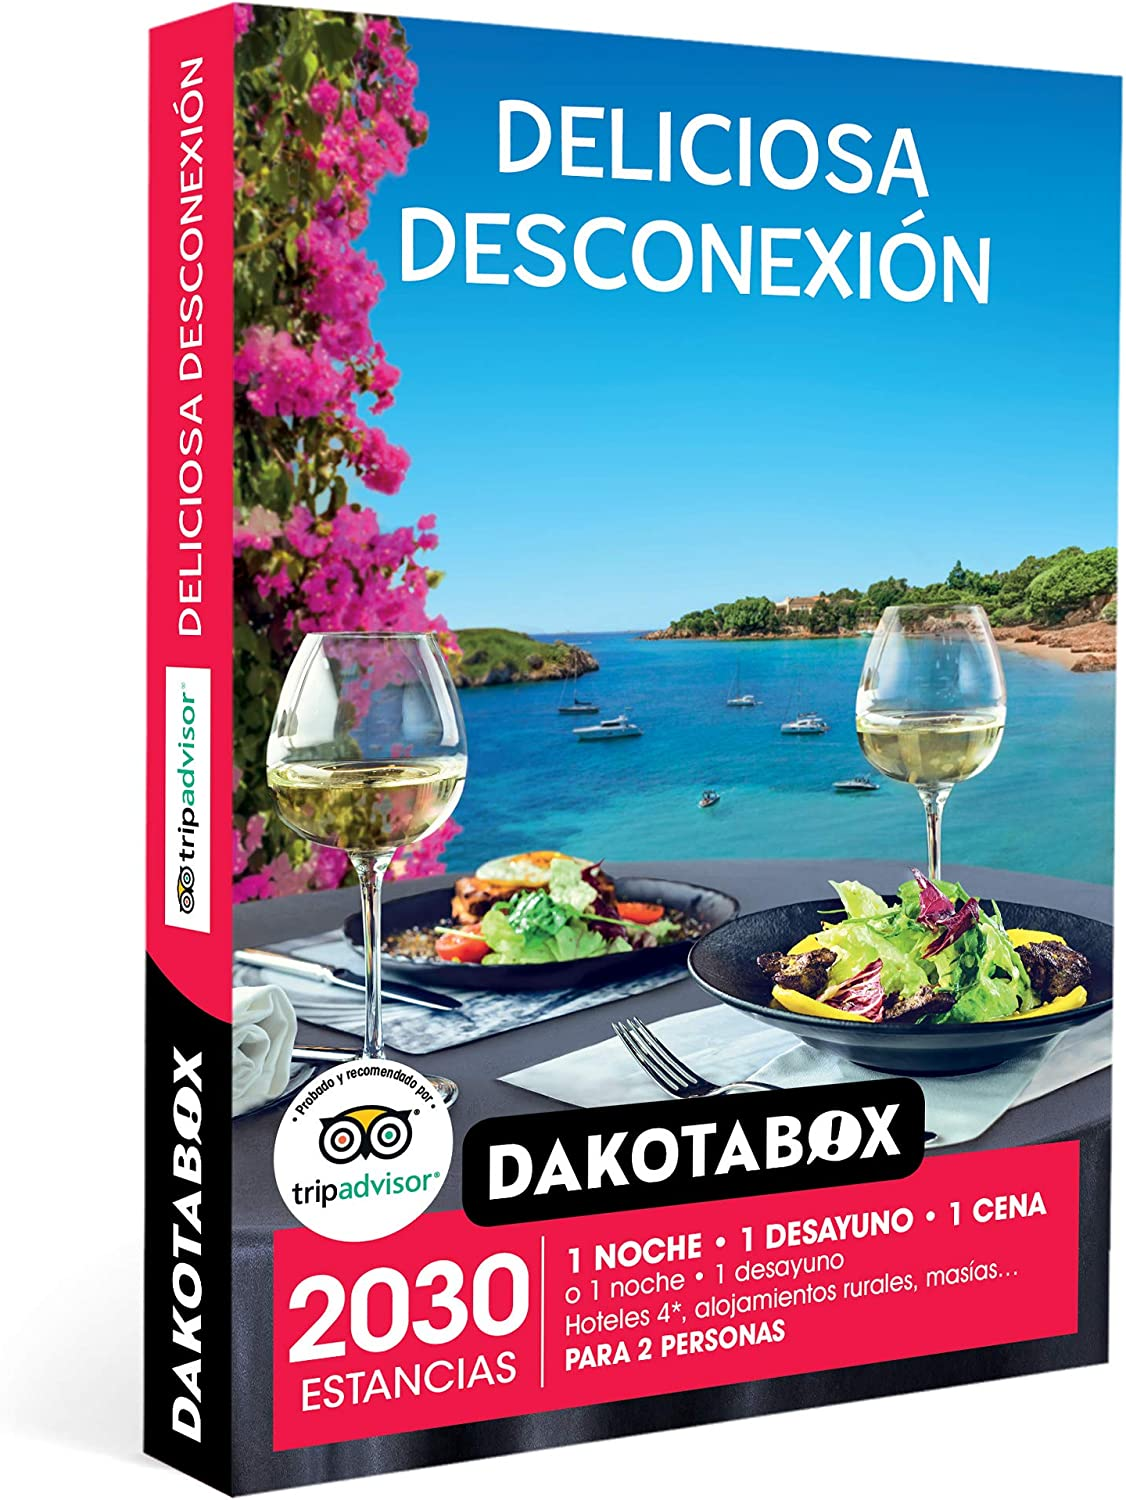 deliciosa desconexion dakotabox